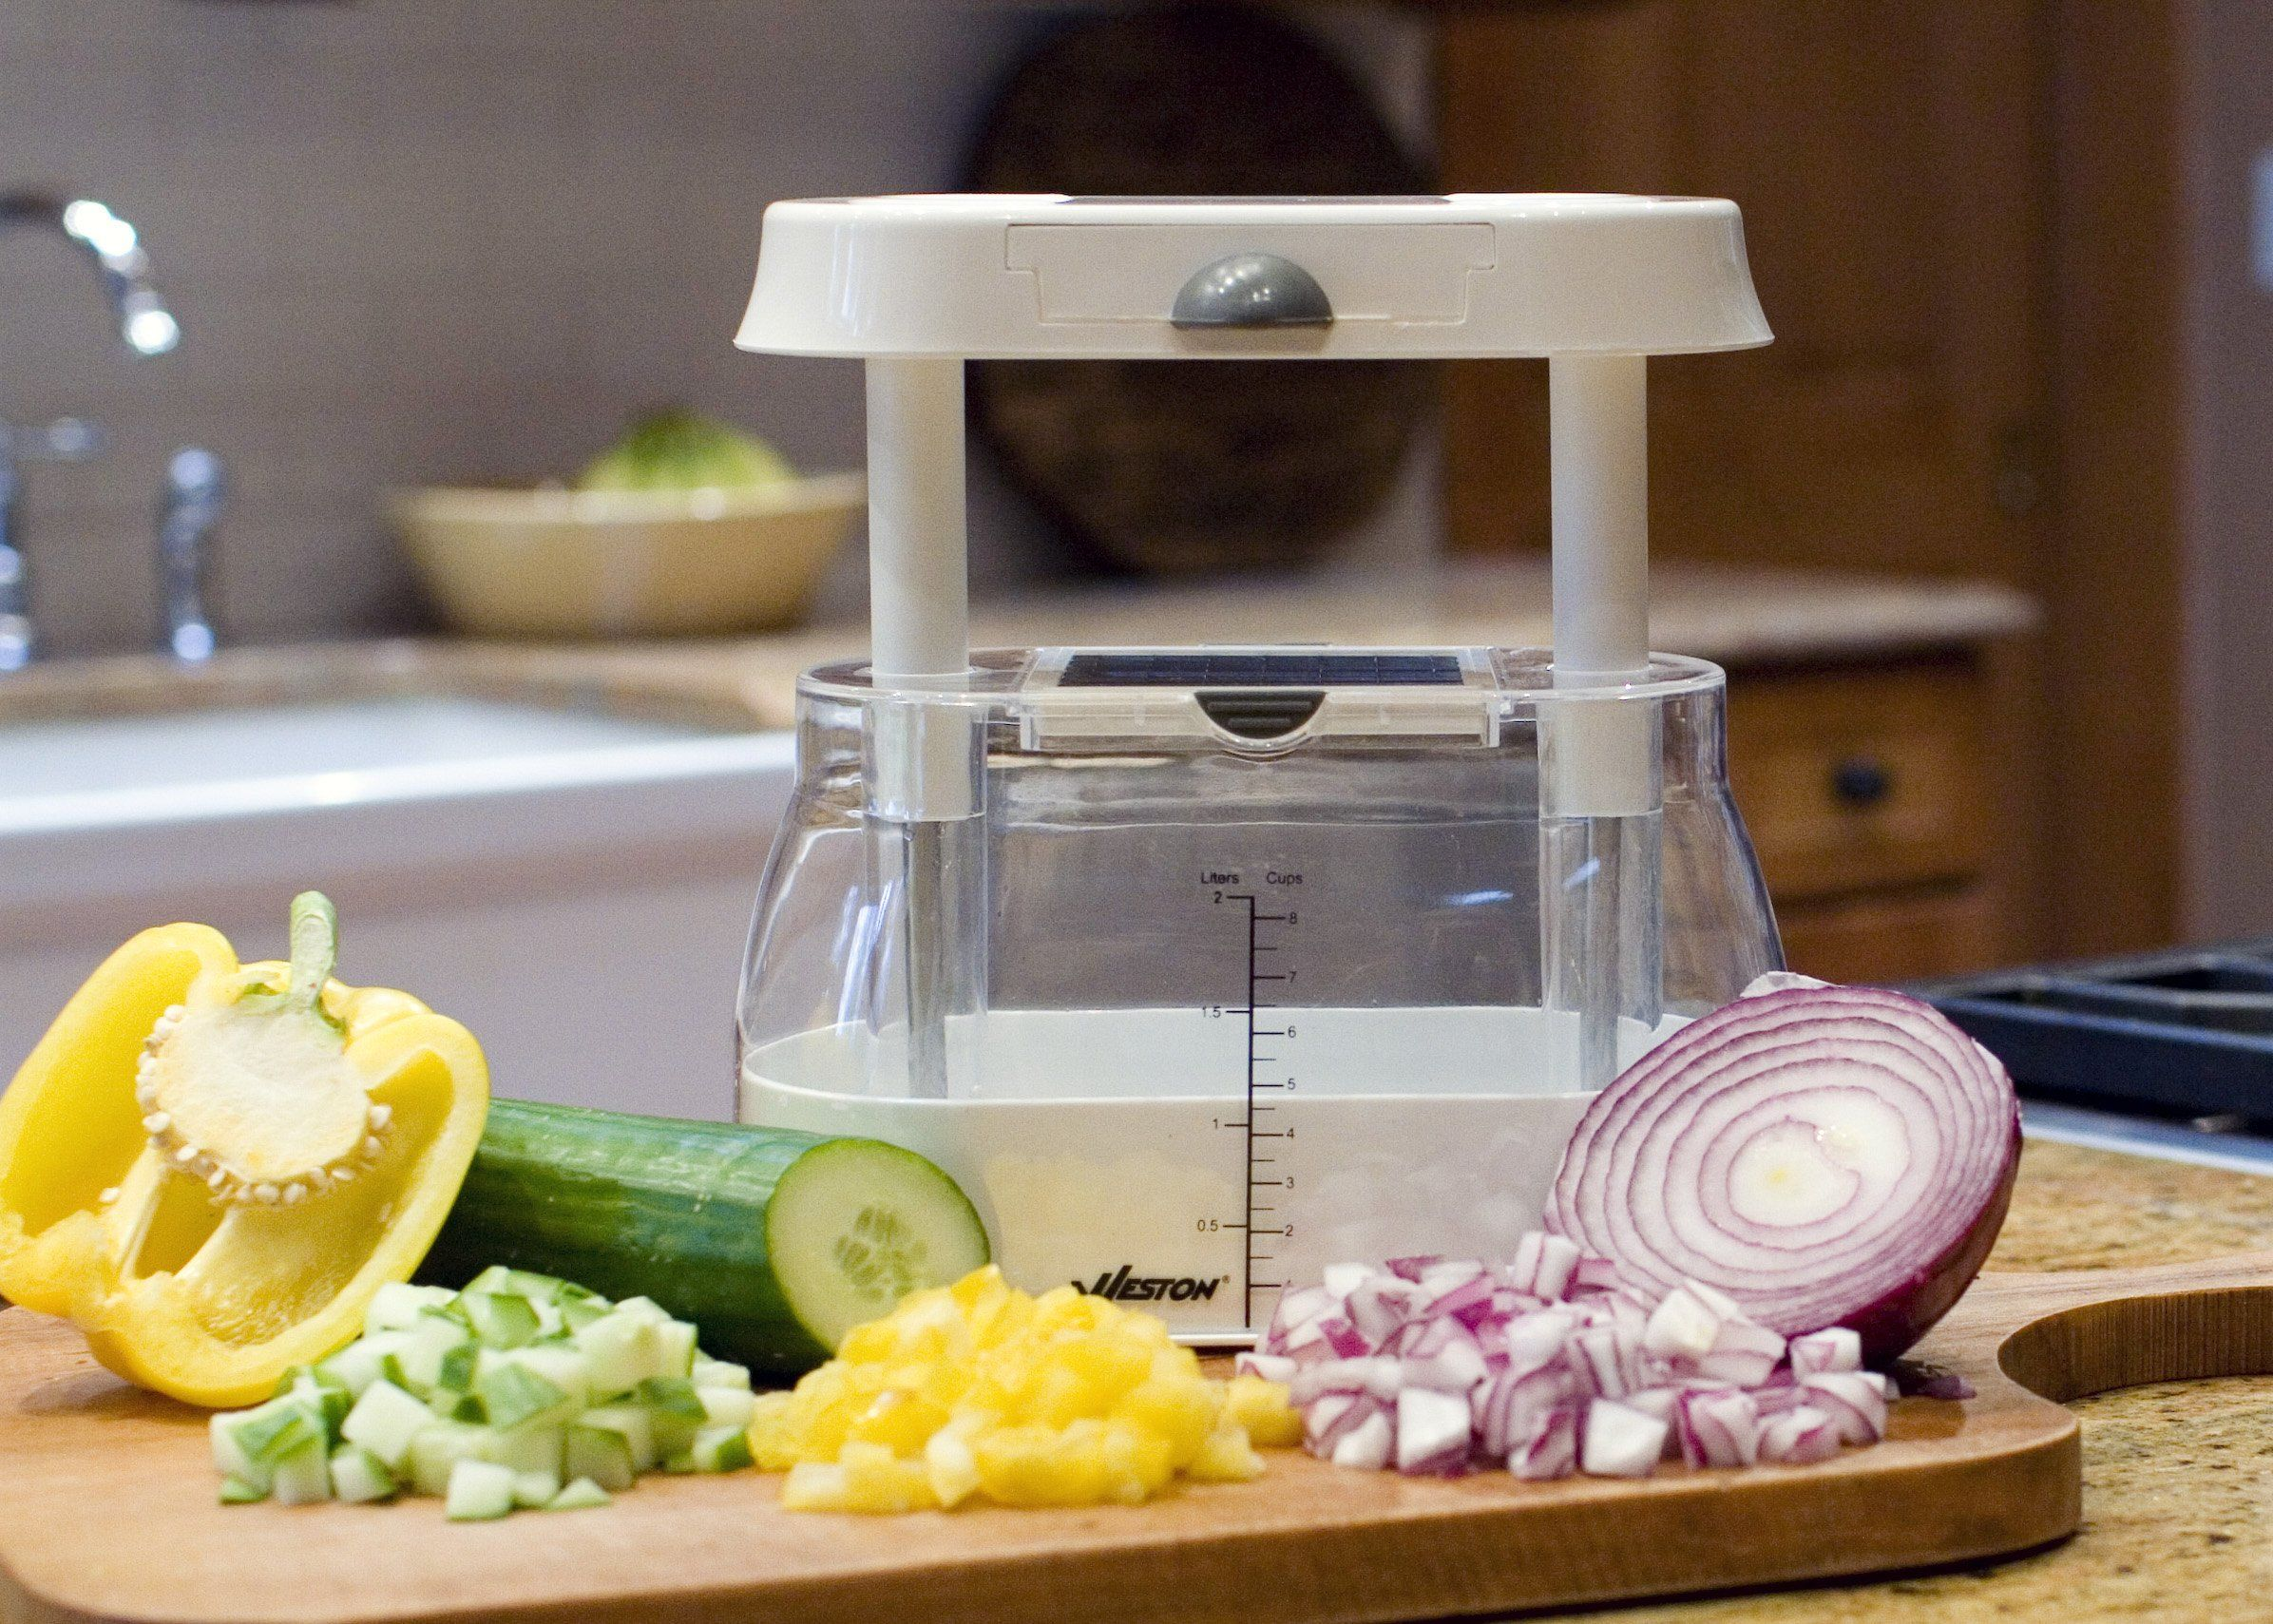 35 Kitchen Gadgets Designed To Make Your Life Easier And More Fun Kitchen Gadgets Cooking Gadgets Gadgets